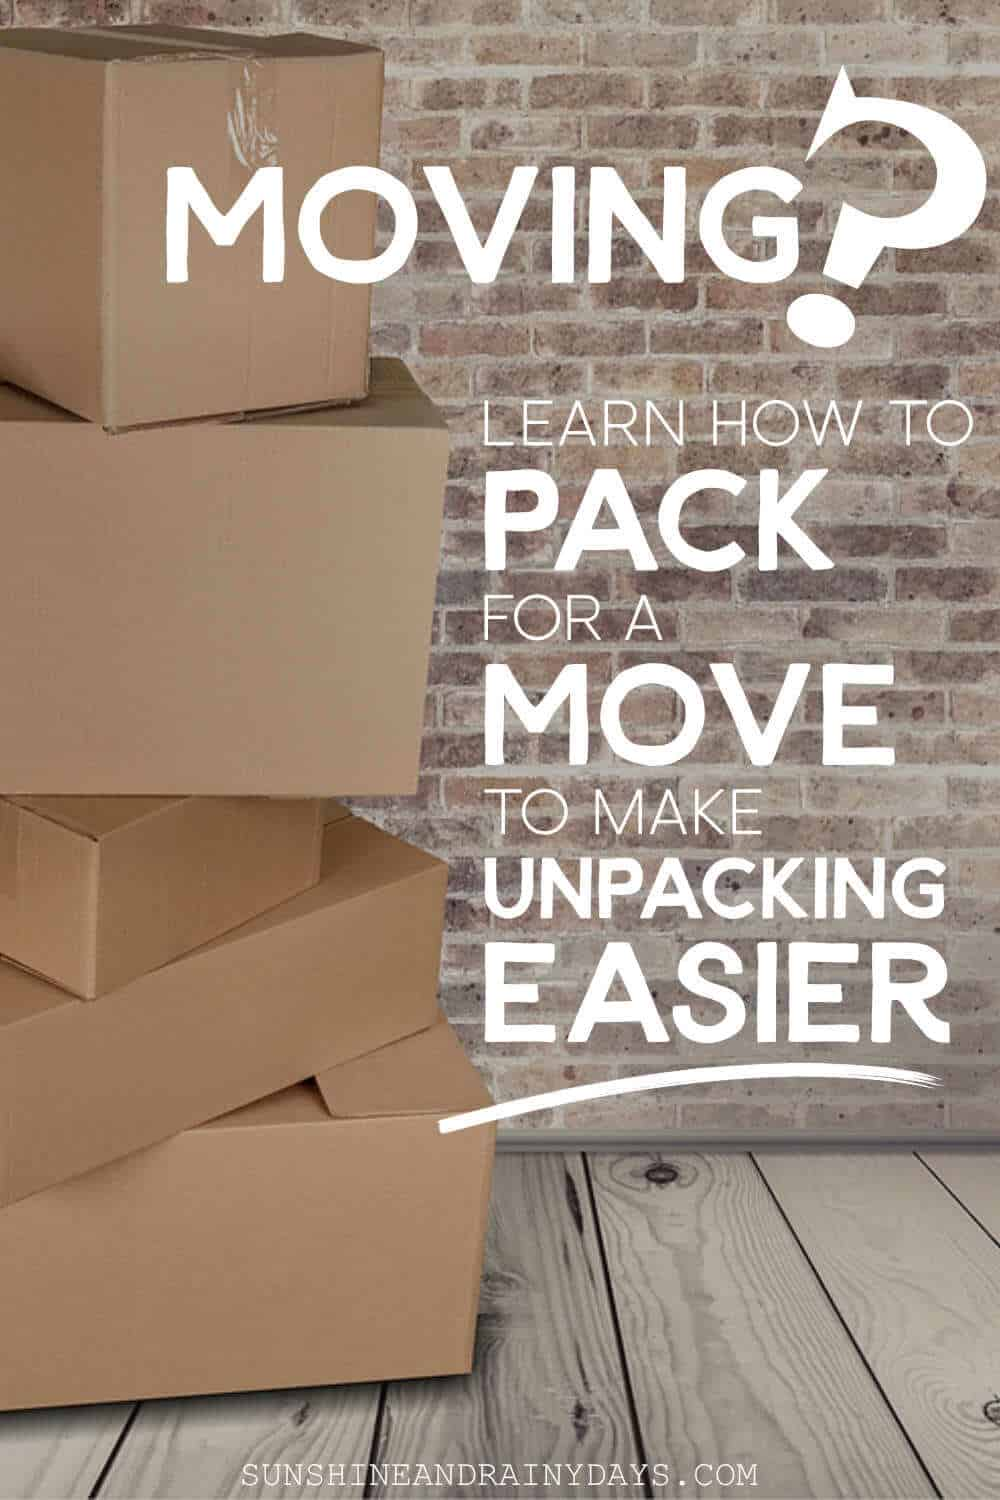 Boxes for moving.